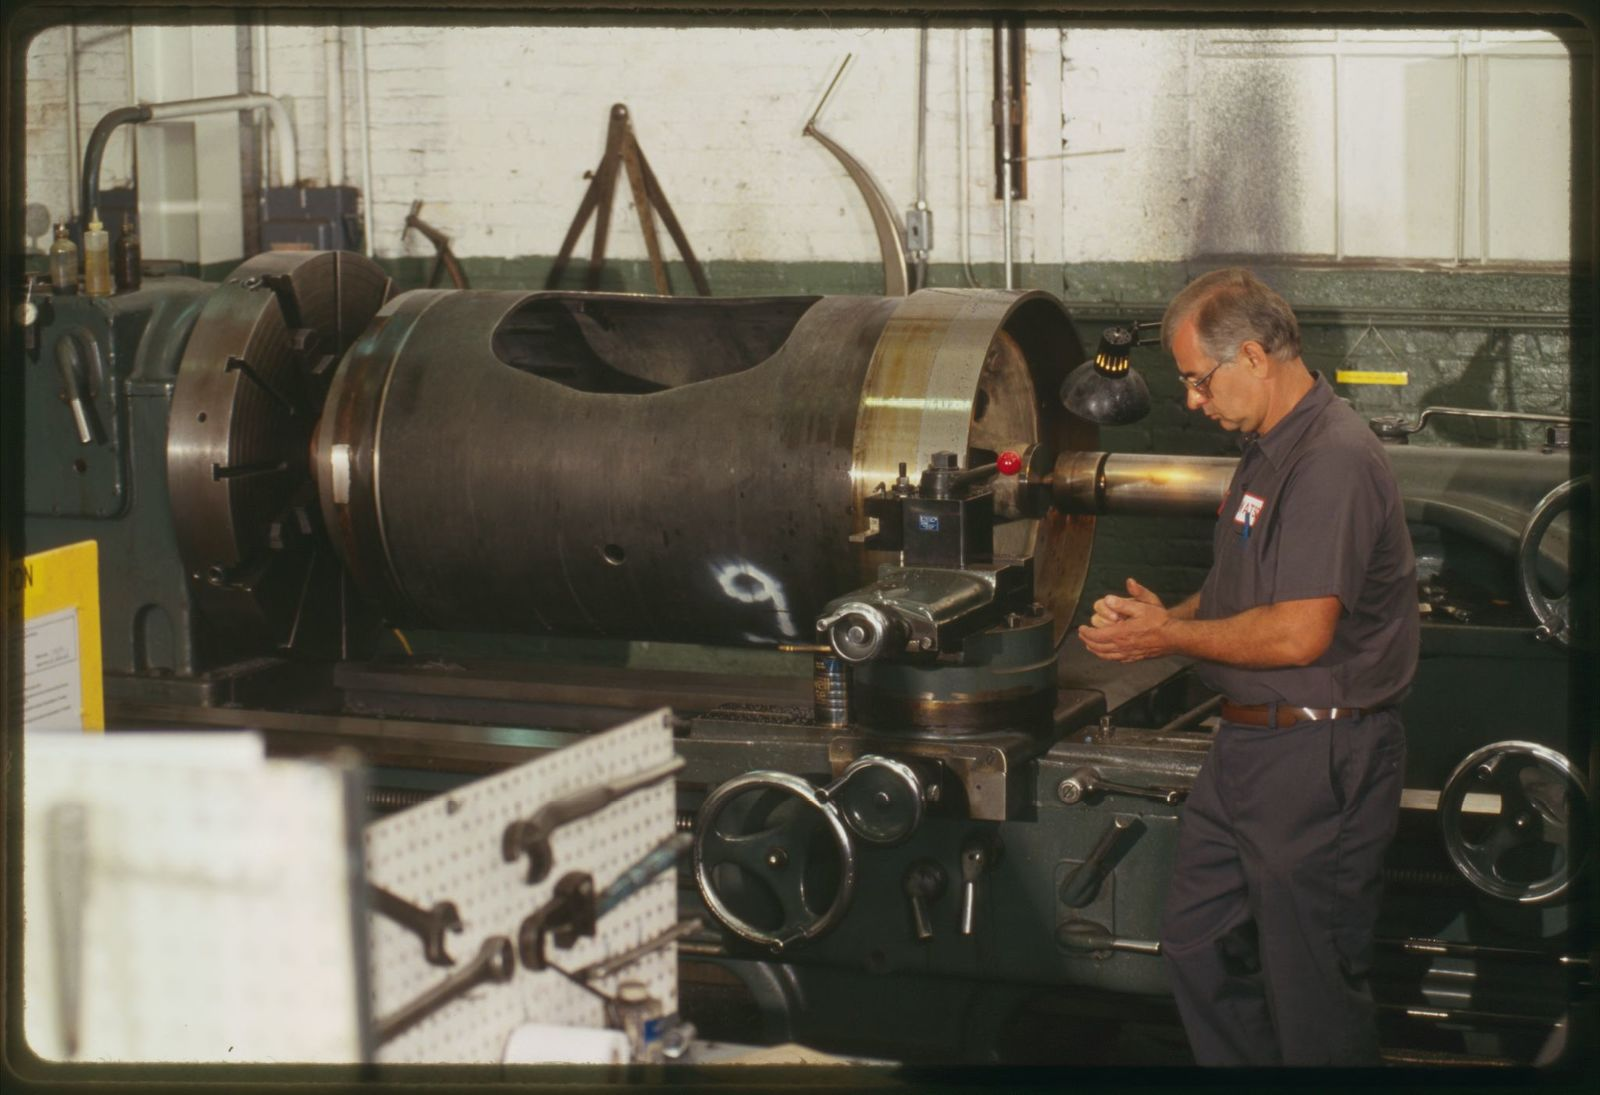 Machinist Jan Sudol works on large cylindrical piece equipment.